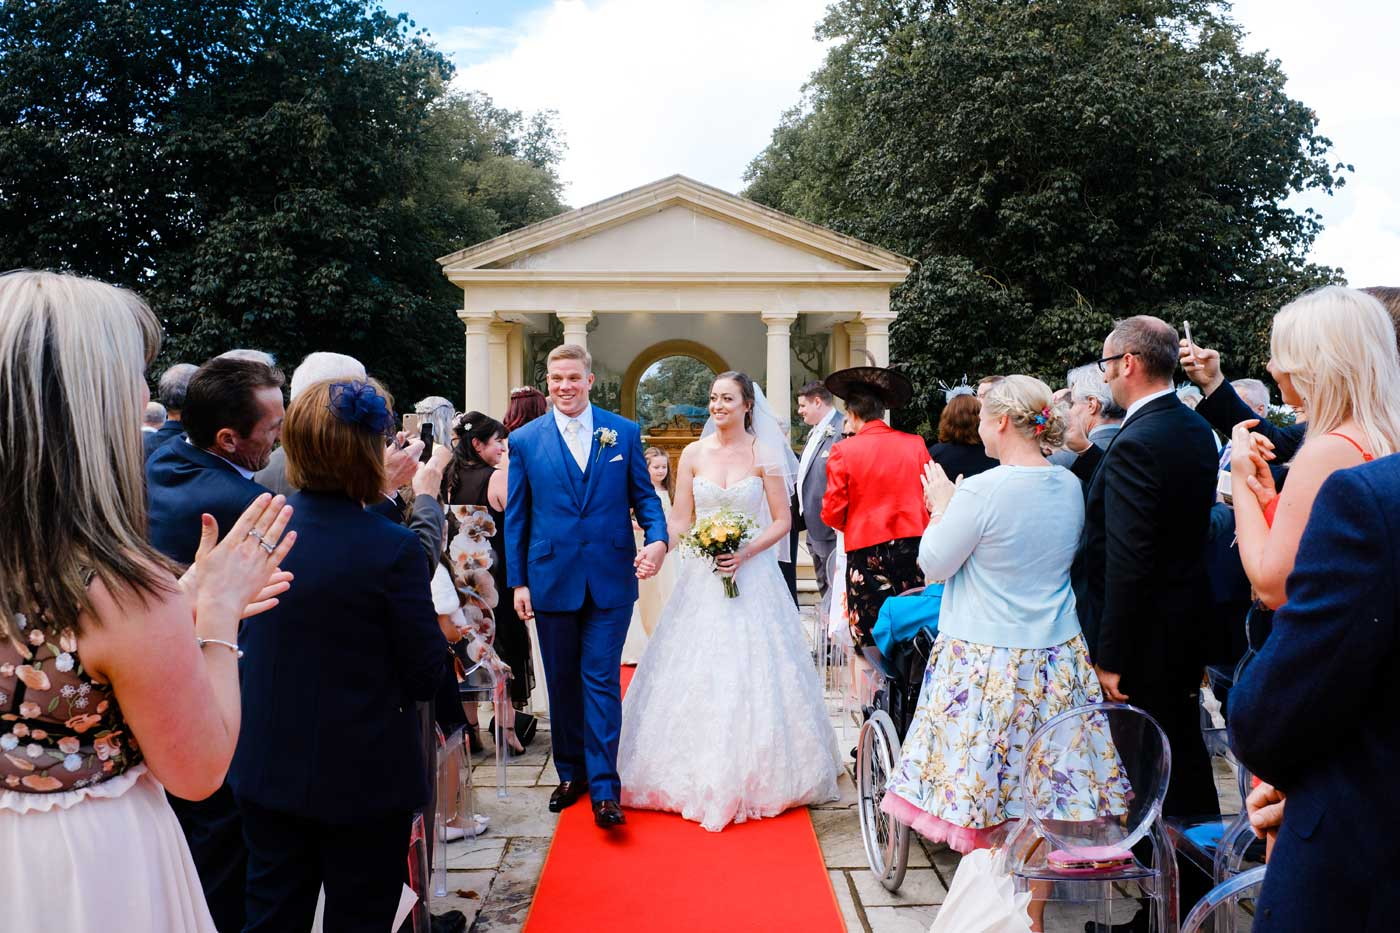 Groom and bride walking down the aisle after their Rowton Castle outdoo wedding ceremony